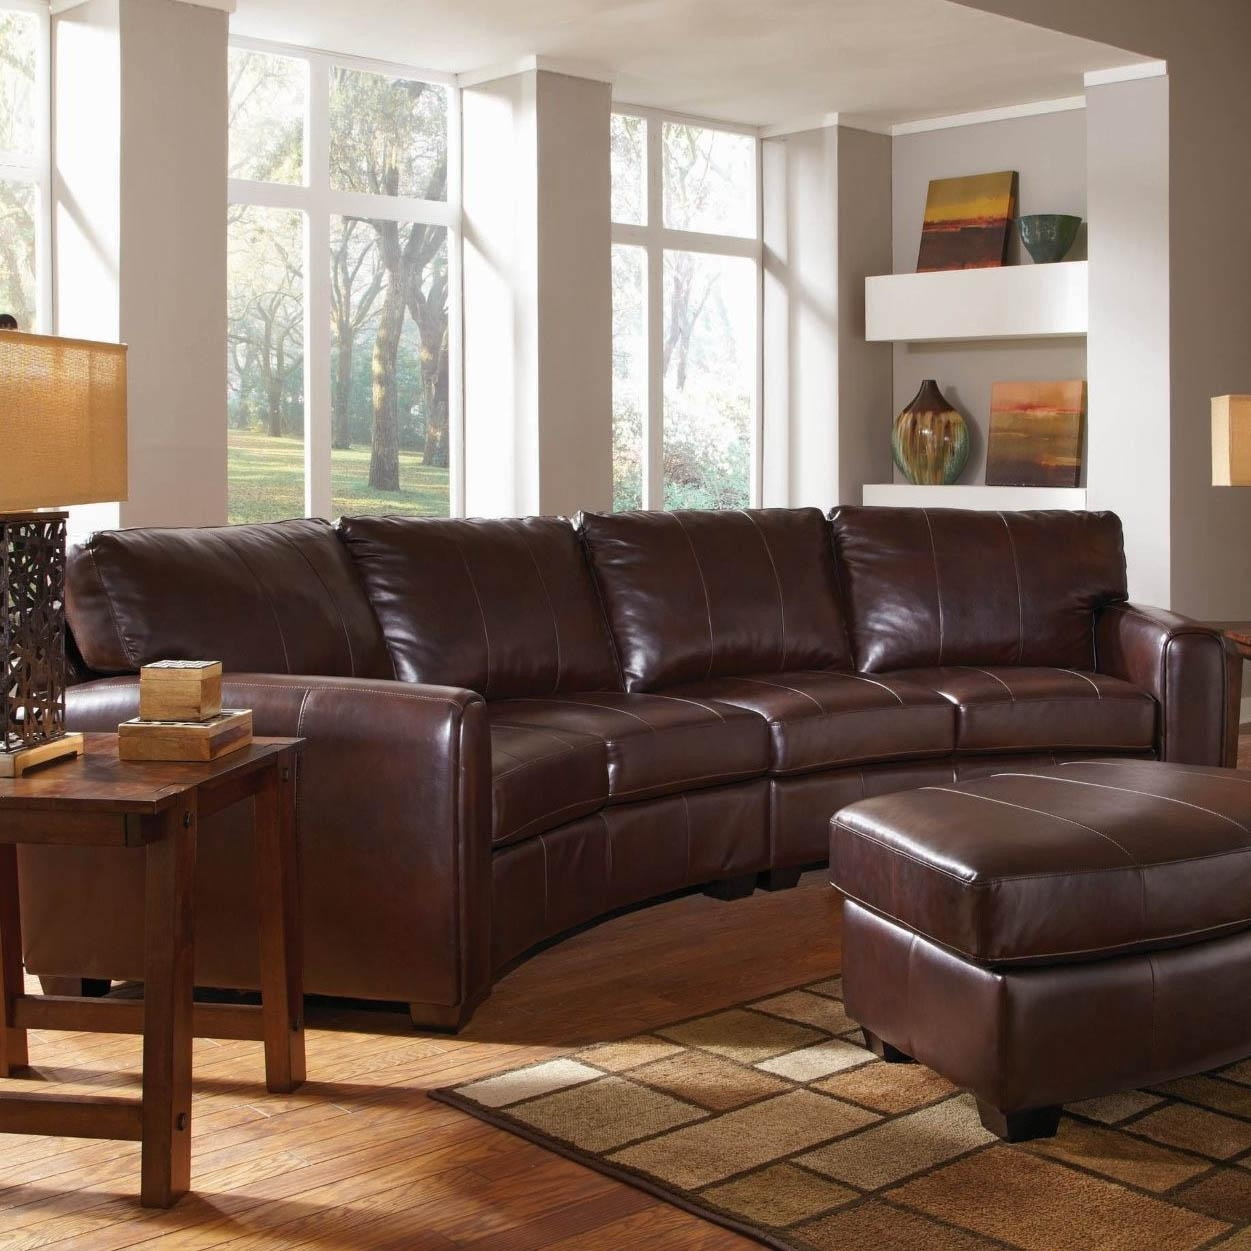 Curved Sectional Sofa Magnificent Large Sectional Sofas 197 Best Intended For Curved Sectional Sofa With Recliner (Image 2 of 15)